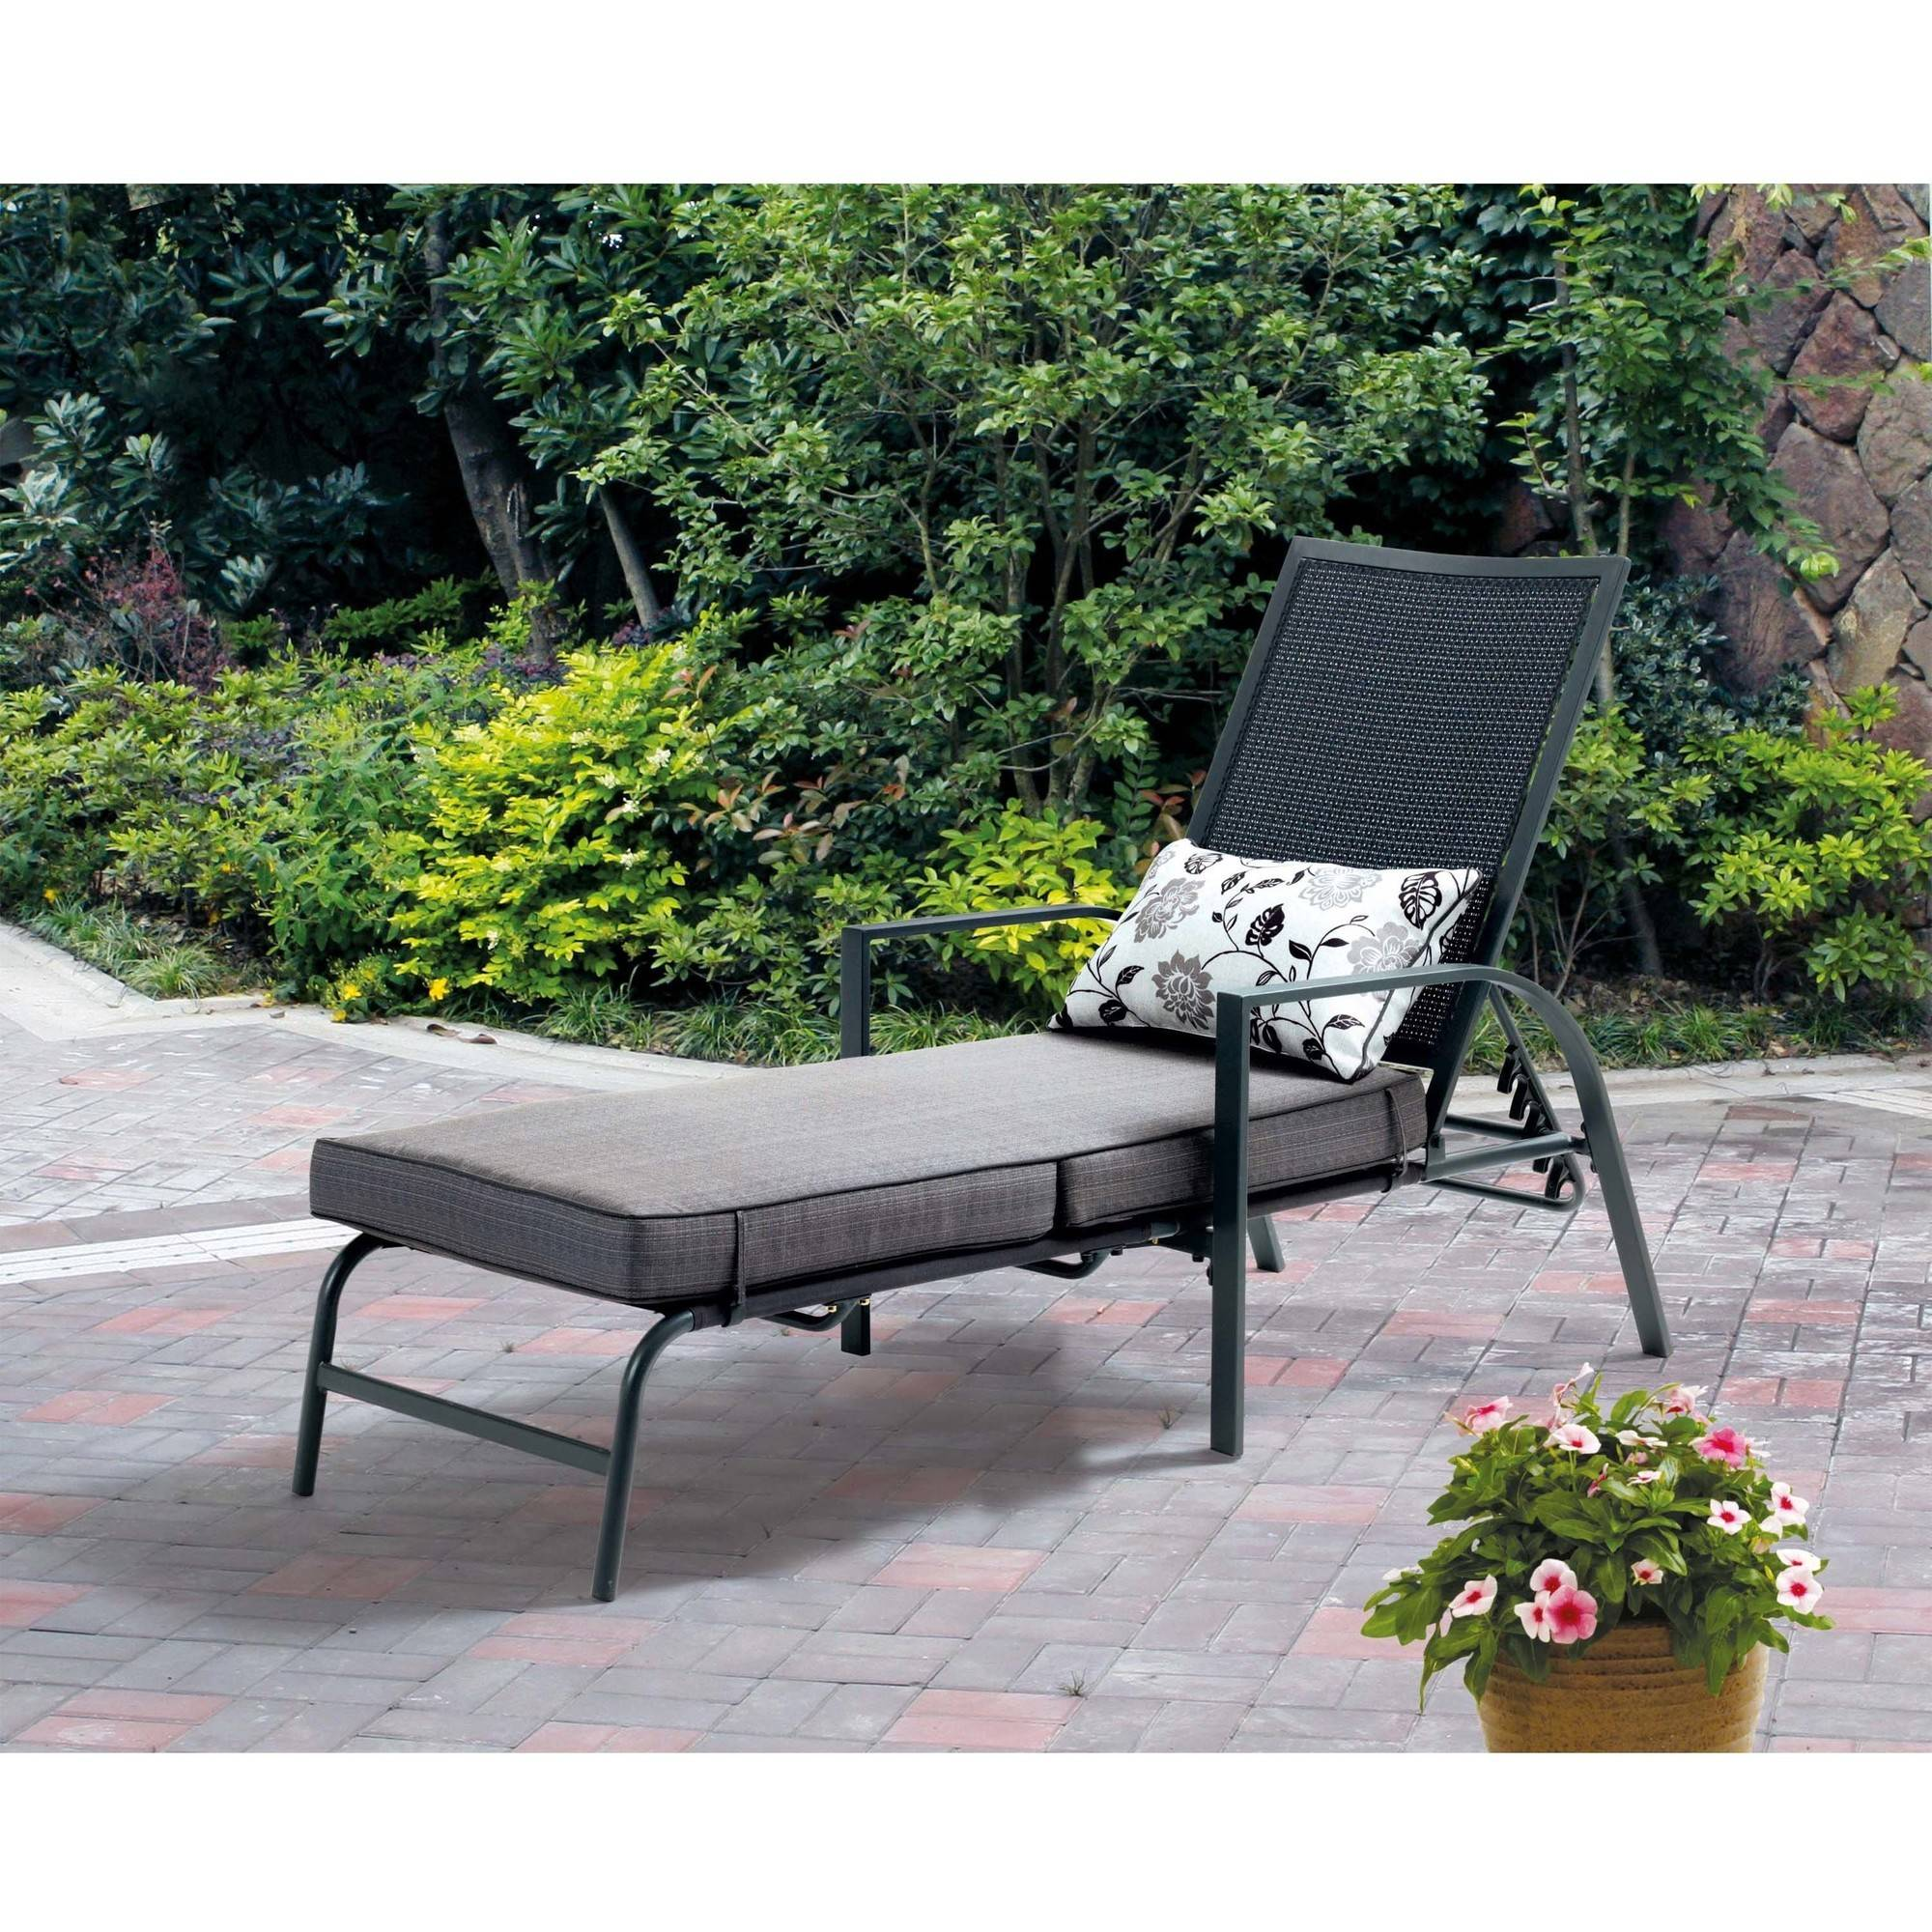 Mainstays alexandra square chaise lounge gray with leaf design walmart com